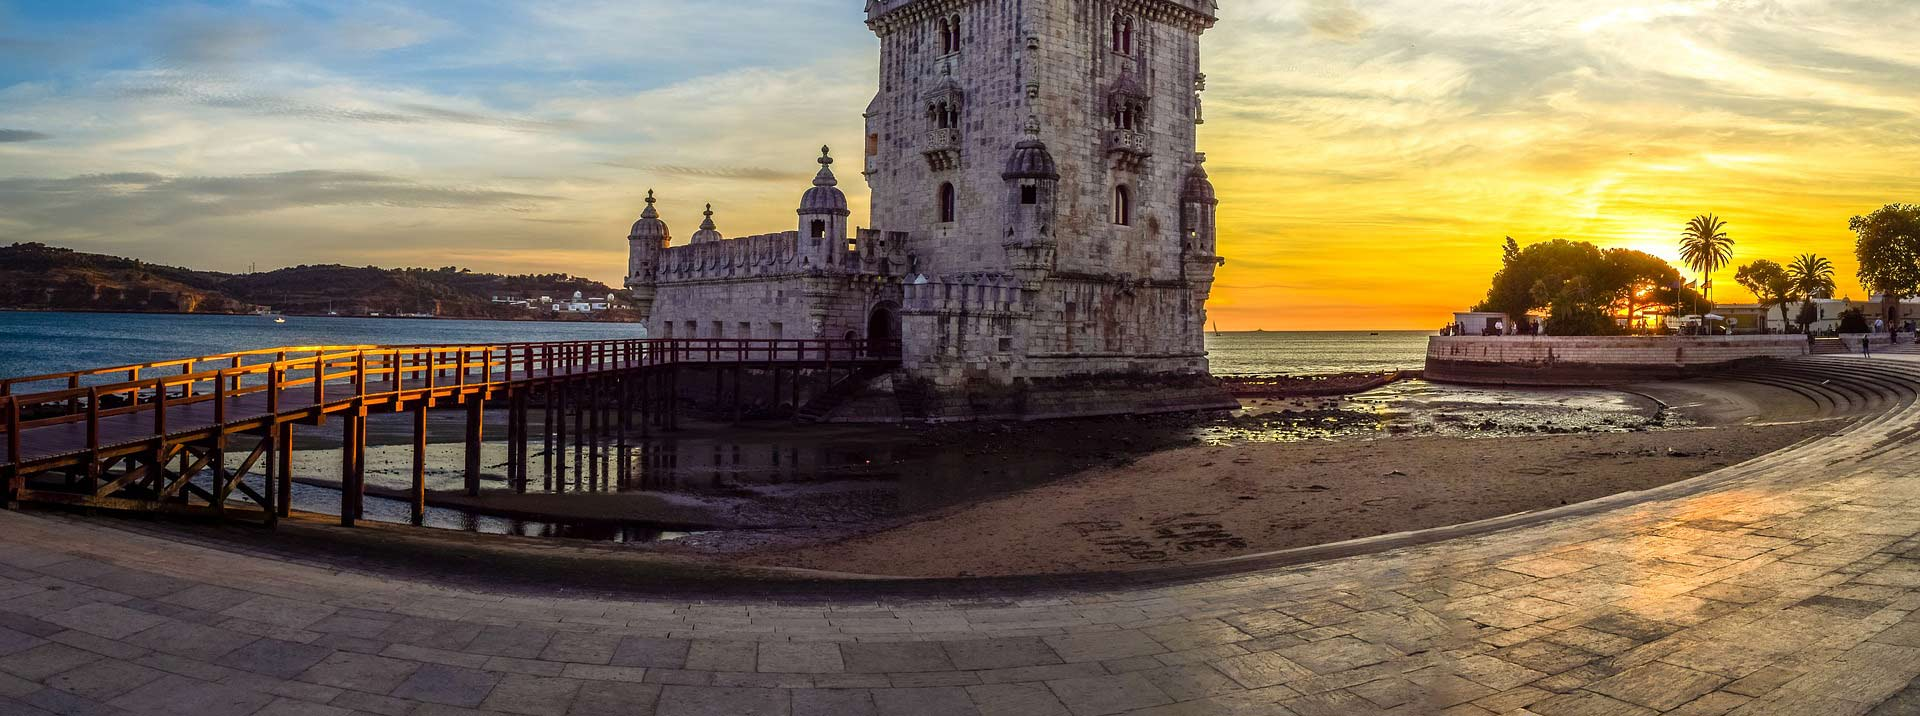 Discounted flight tickets from New York to Lisbon - IFlyFirstClass